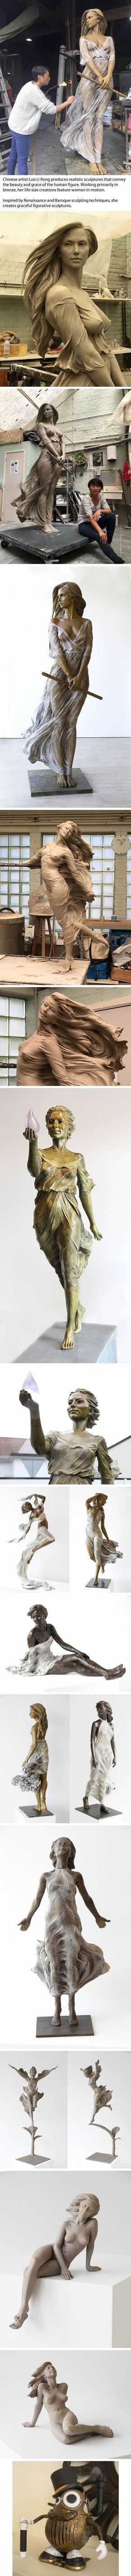 Life-Sized Female Sculptures Inspired by the Graceful Beauty of Renaissance Art